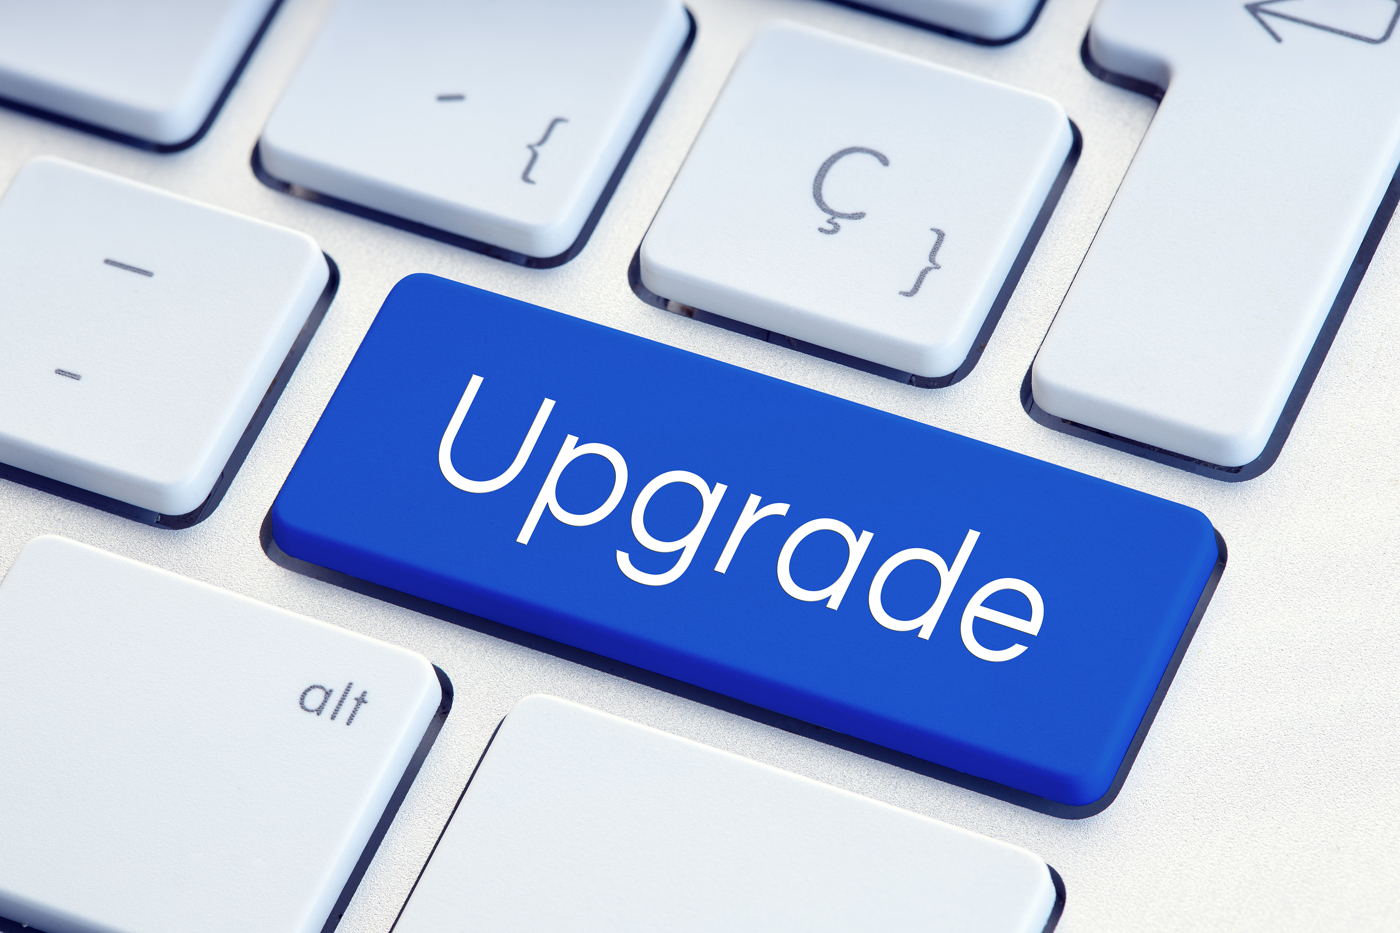 Analyst upgrade, Stock upgrade, Stock rating, Analyst news, Buy rating